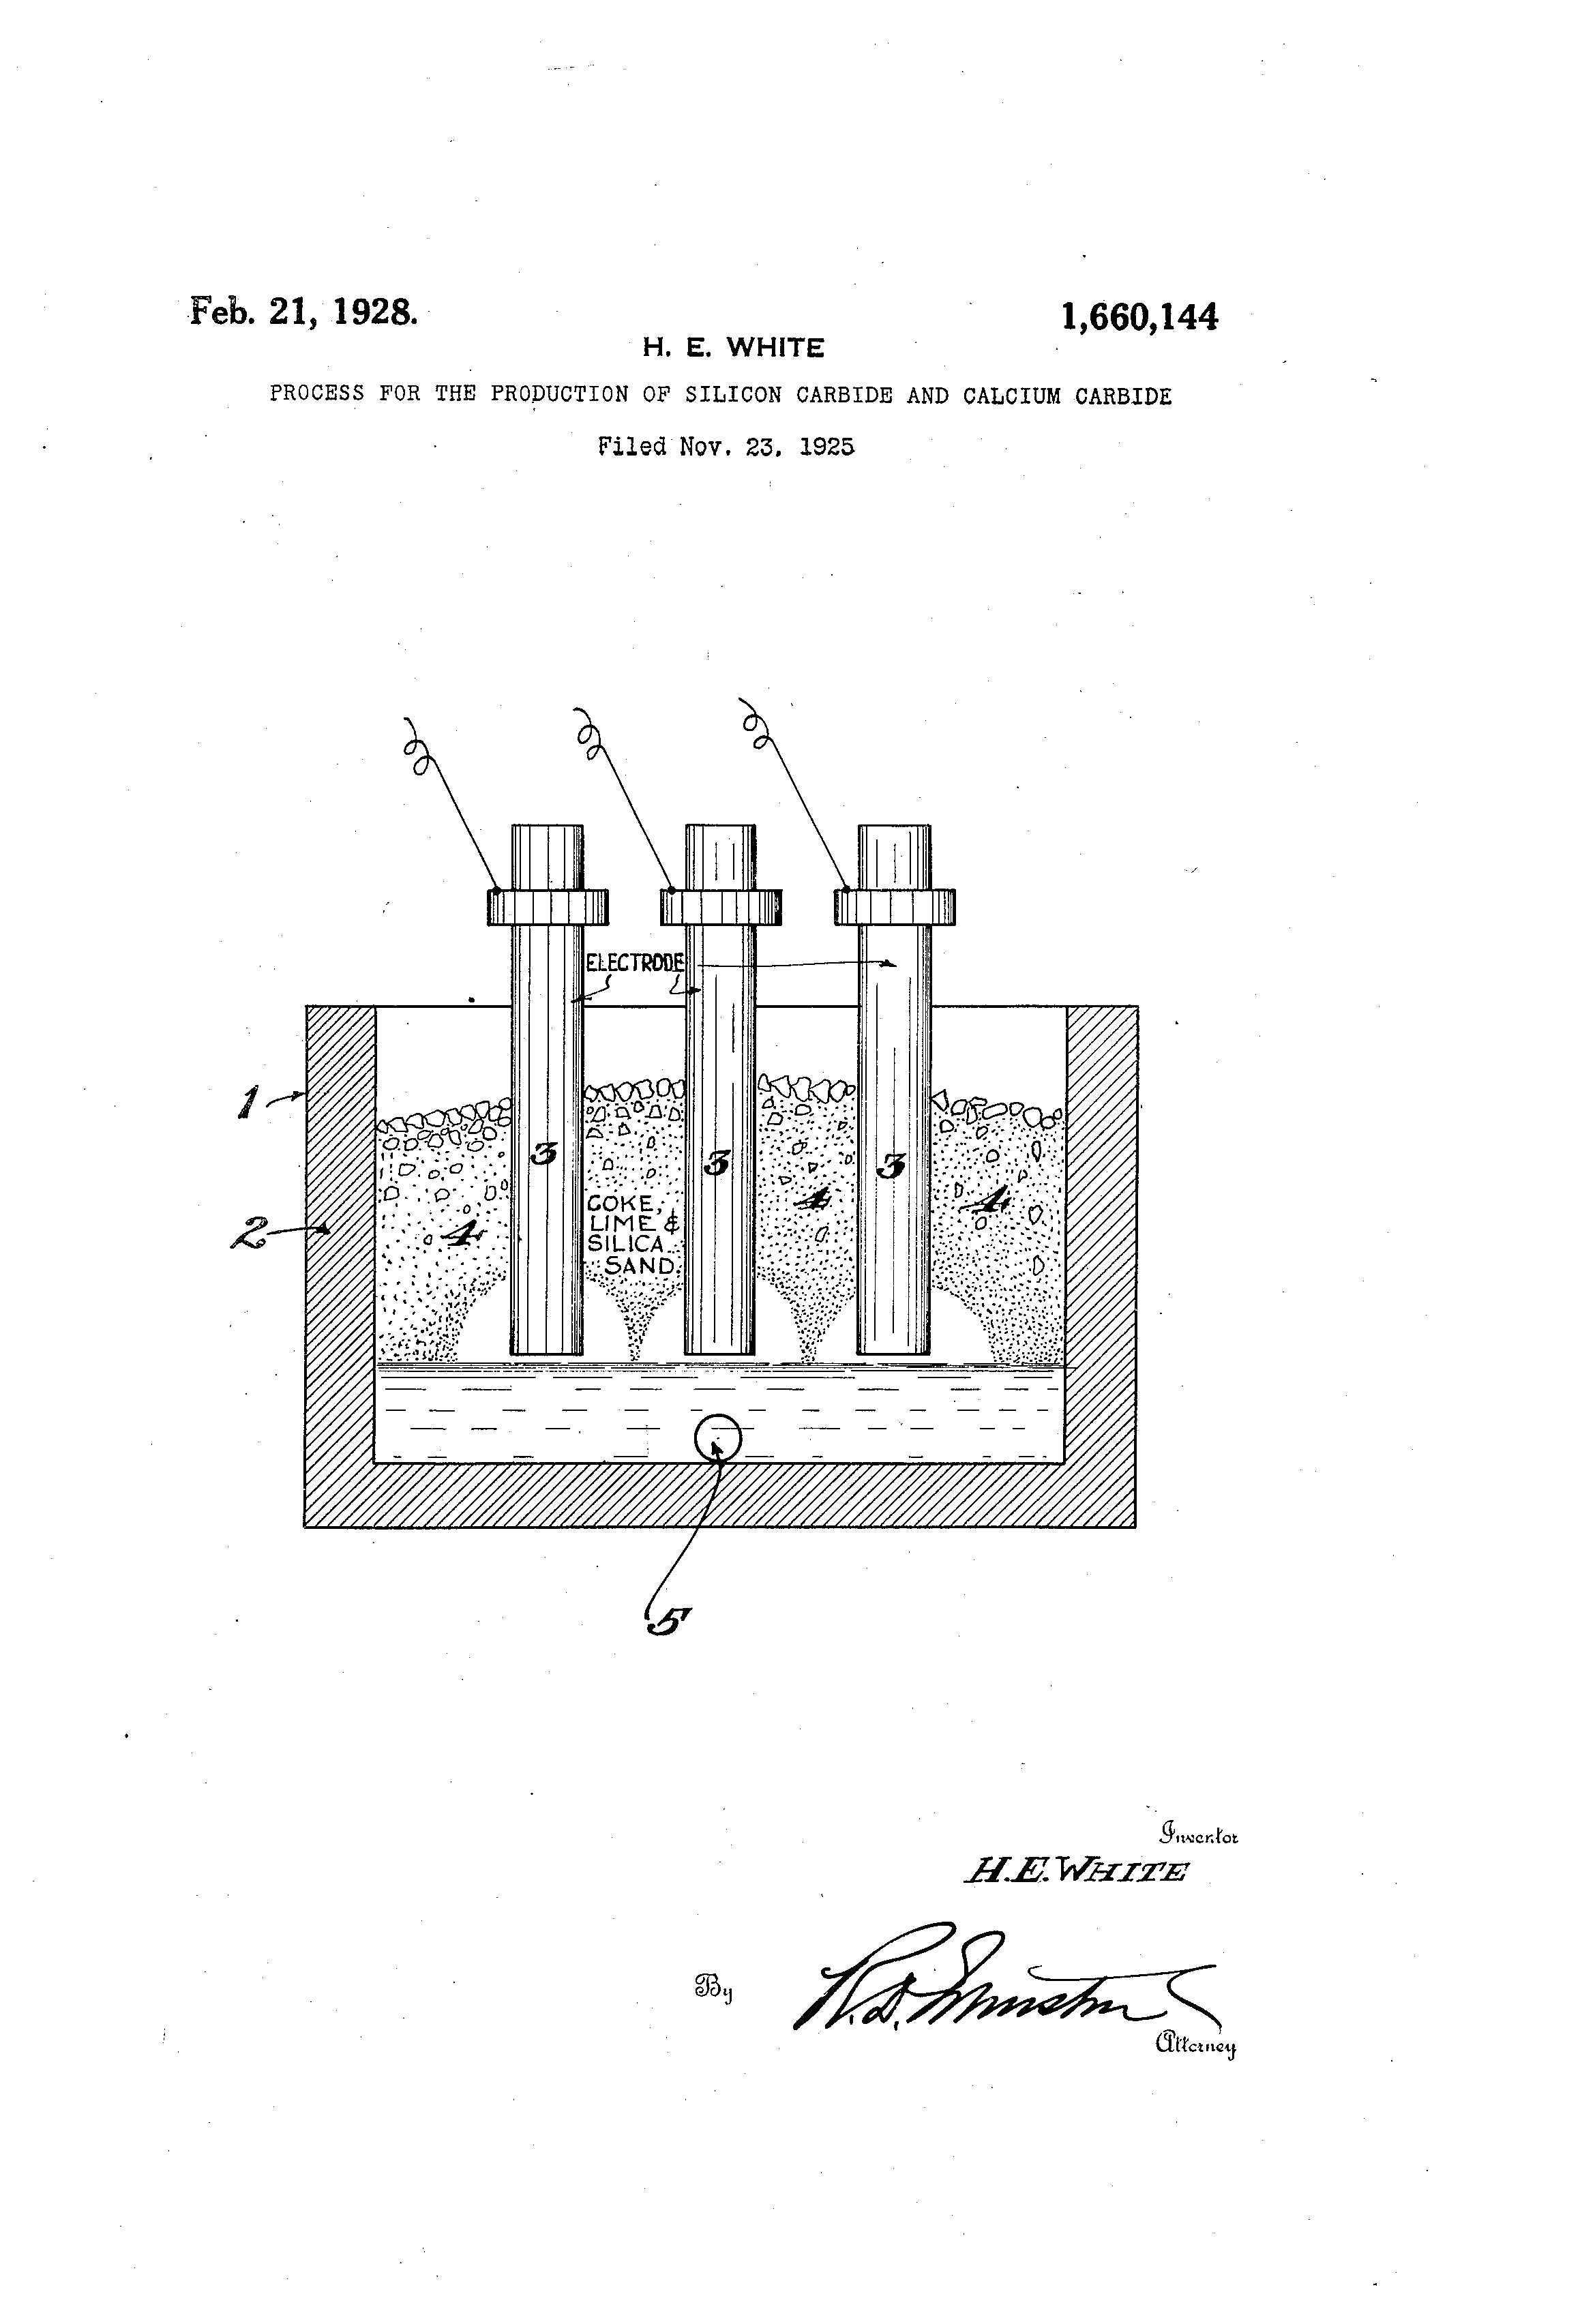 patent us1660144 - process for the production of silicon carbide and calcium carbide